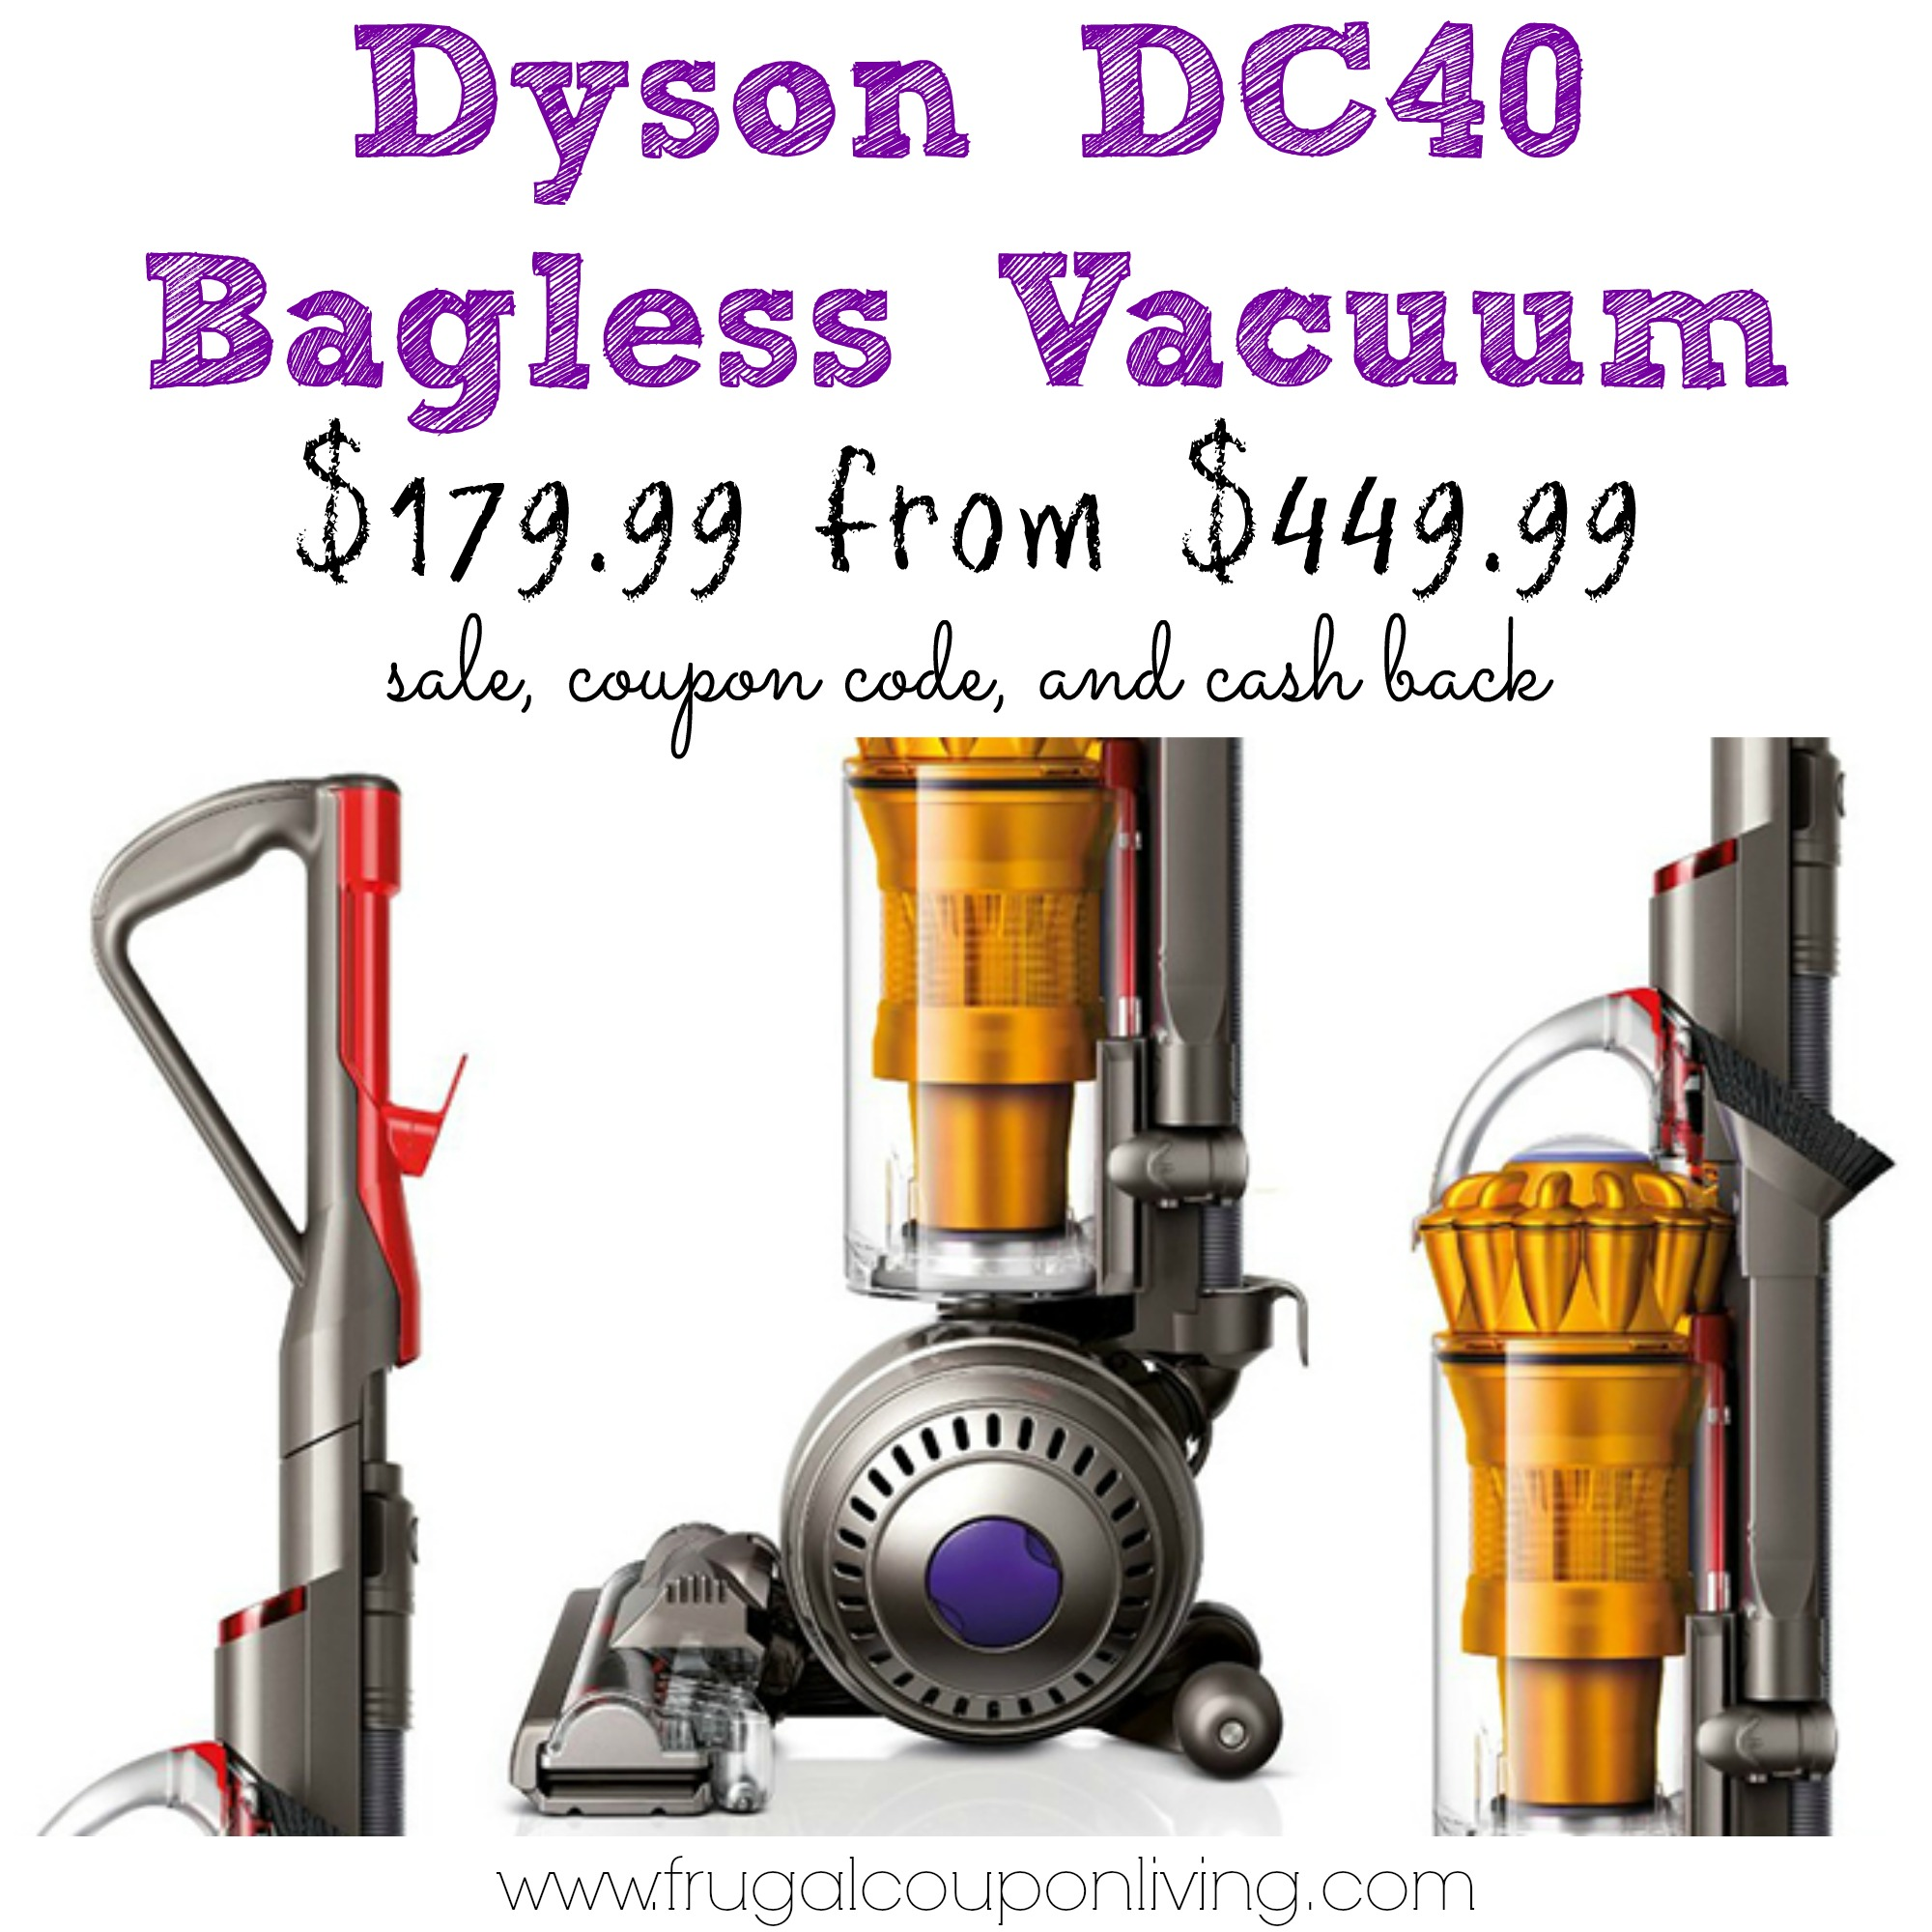 black friday dyson dc40 vacuum sale 180 from 450 hurry. Black Bedroom Furniture Sets. Home Design Ideas